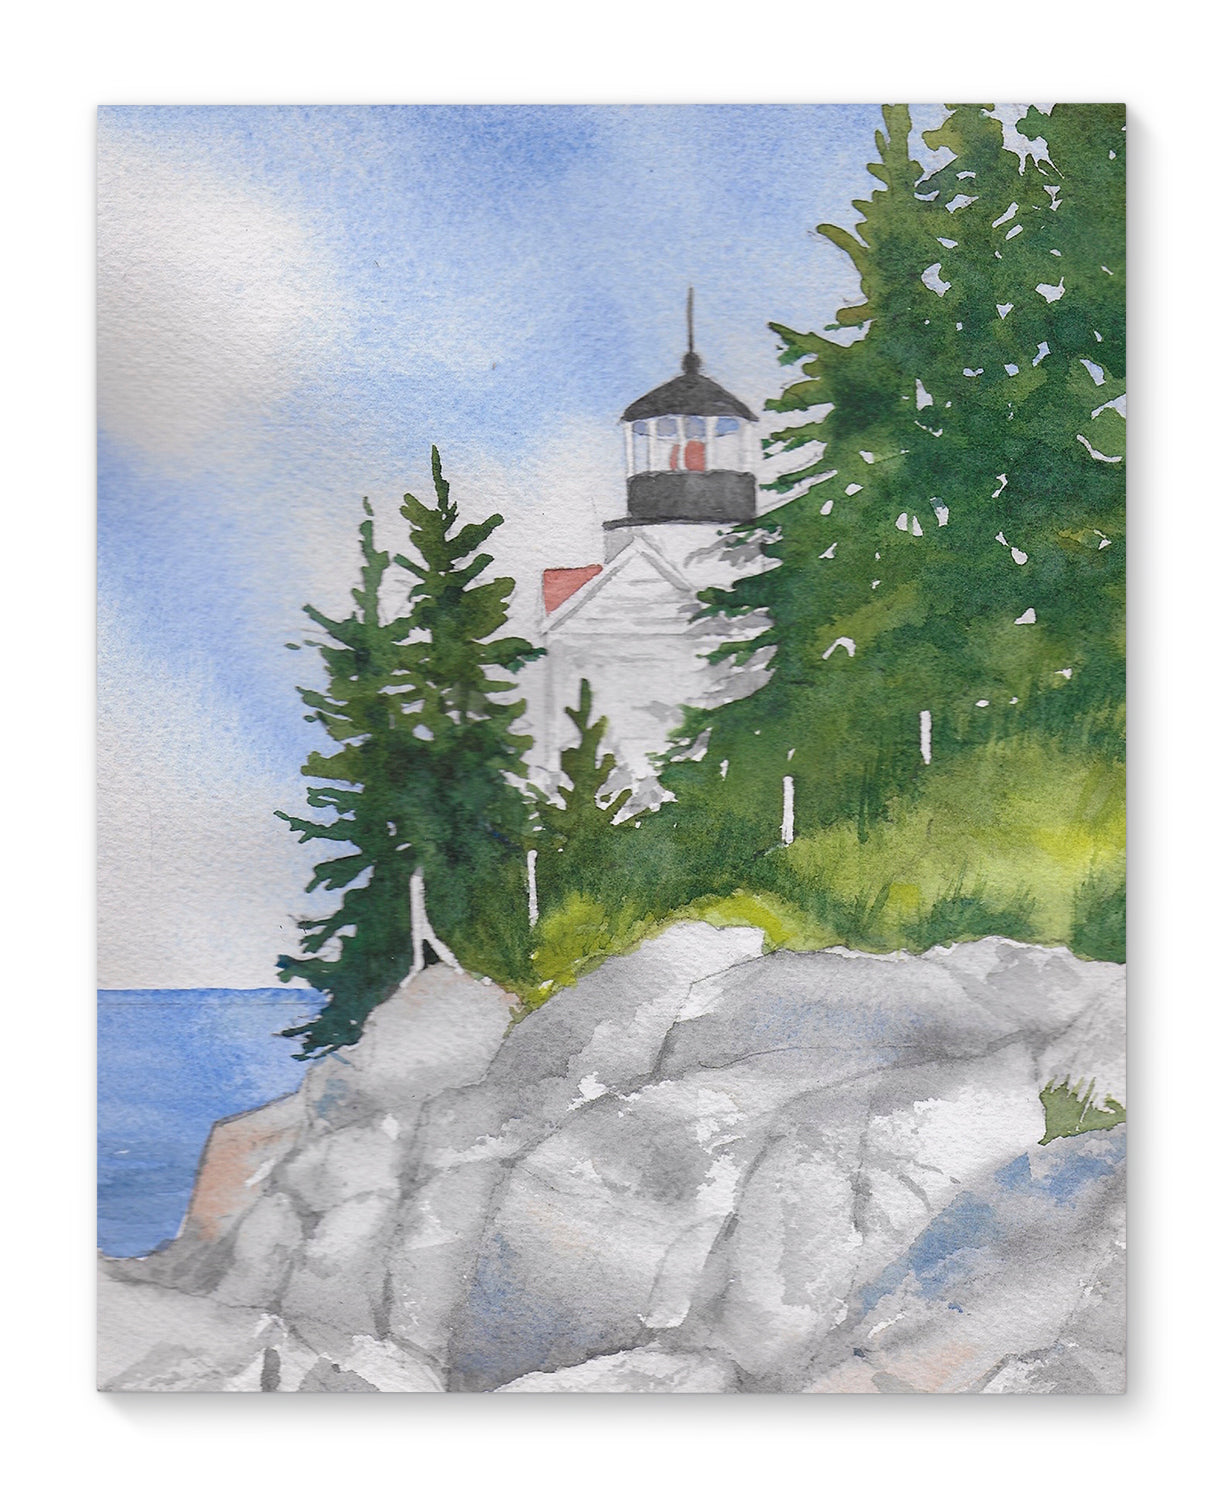 BASS HARBOR Premium Canvas Gallery Wraps By Jayne Conte